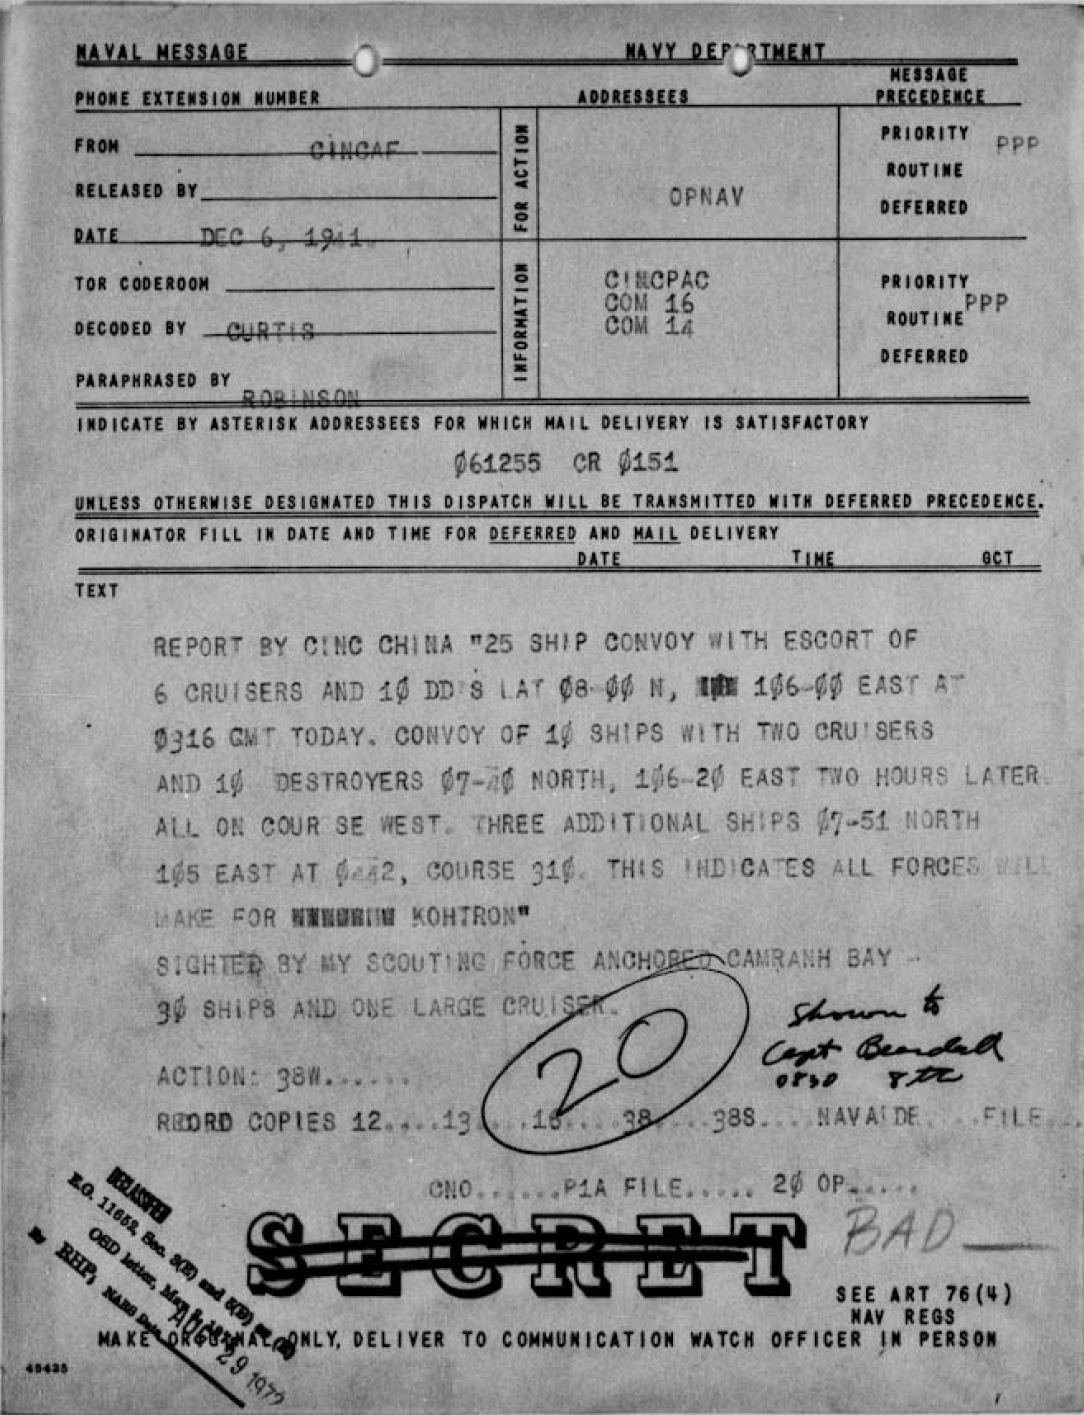 1941-12-06-Contact-Report-on-vessels-at-sea-the-day-before-the-attack-on-Pearl-Harbor